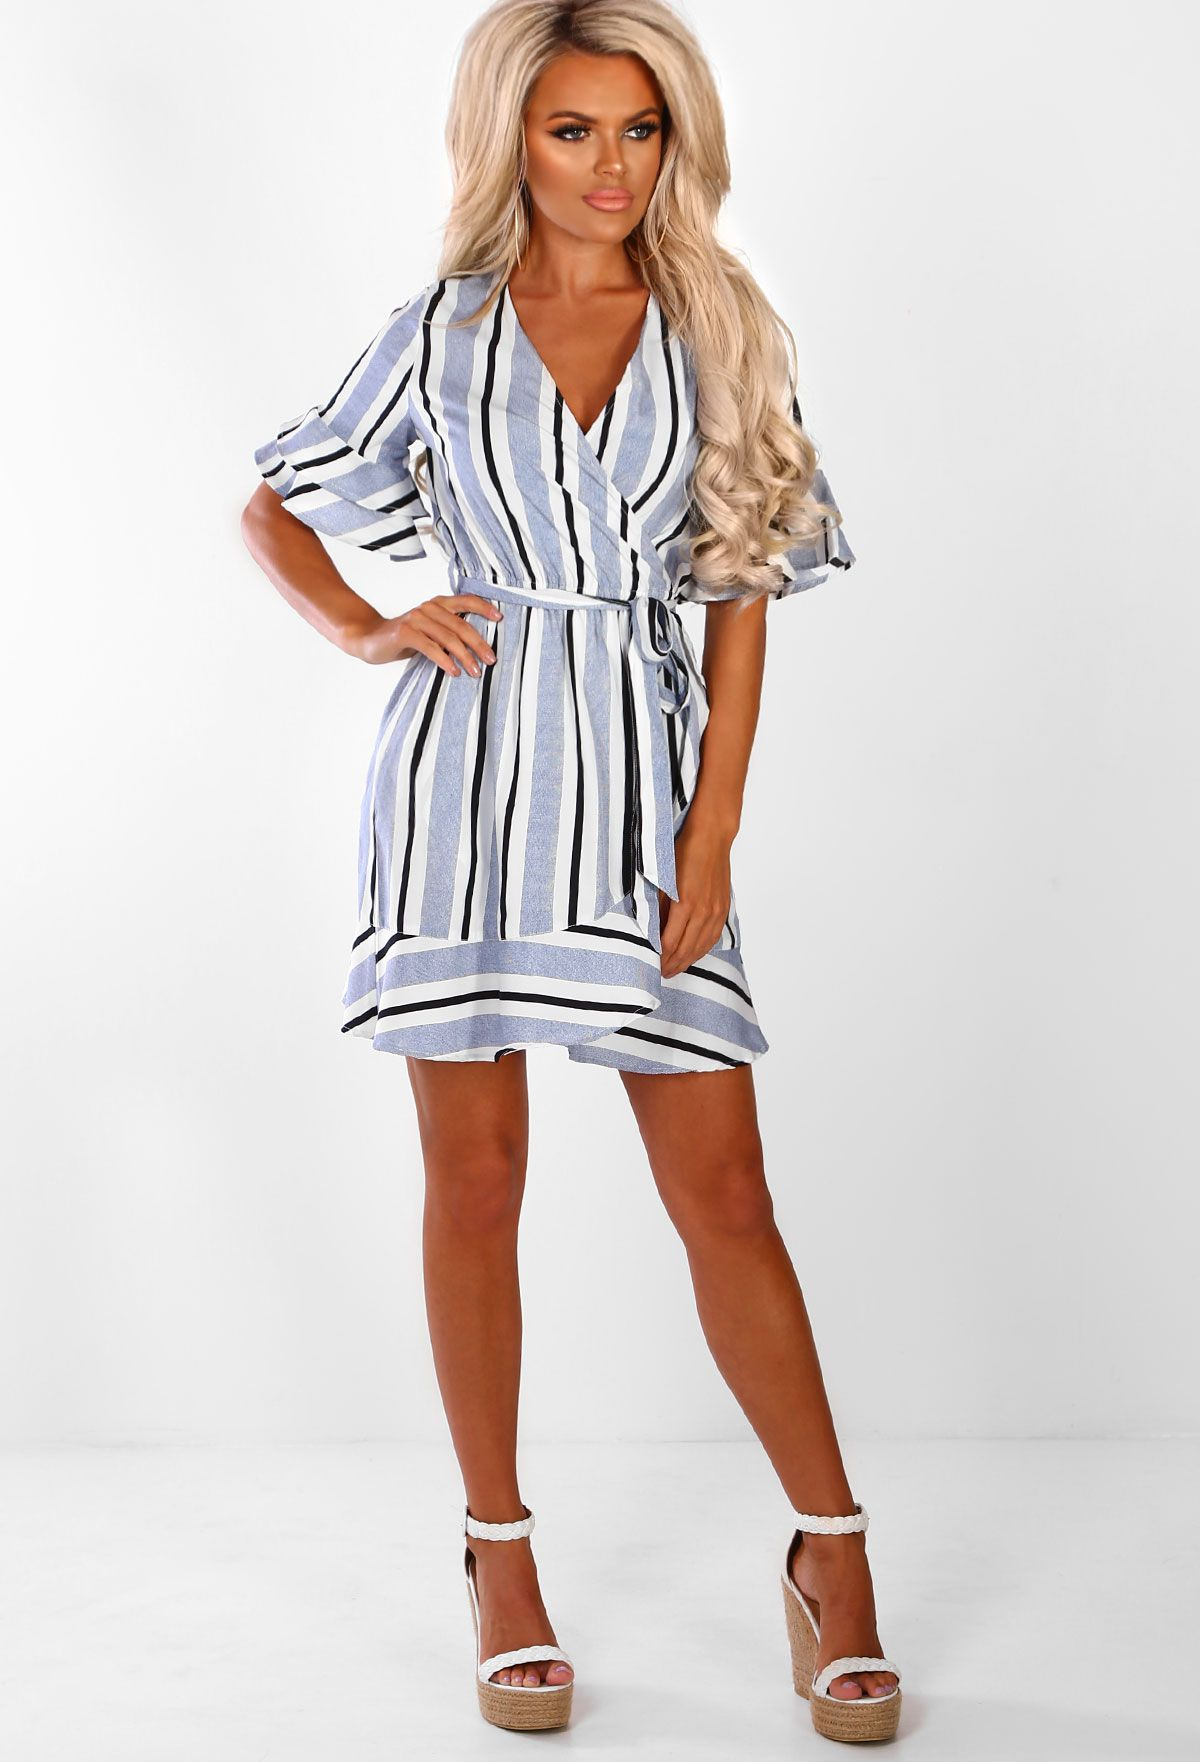 6652bf30273 Shop women s wrap dresses and day dresses at Pink Boutique - for a glam off  duty look shop stripe dresses and blue dresses now!